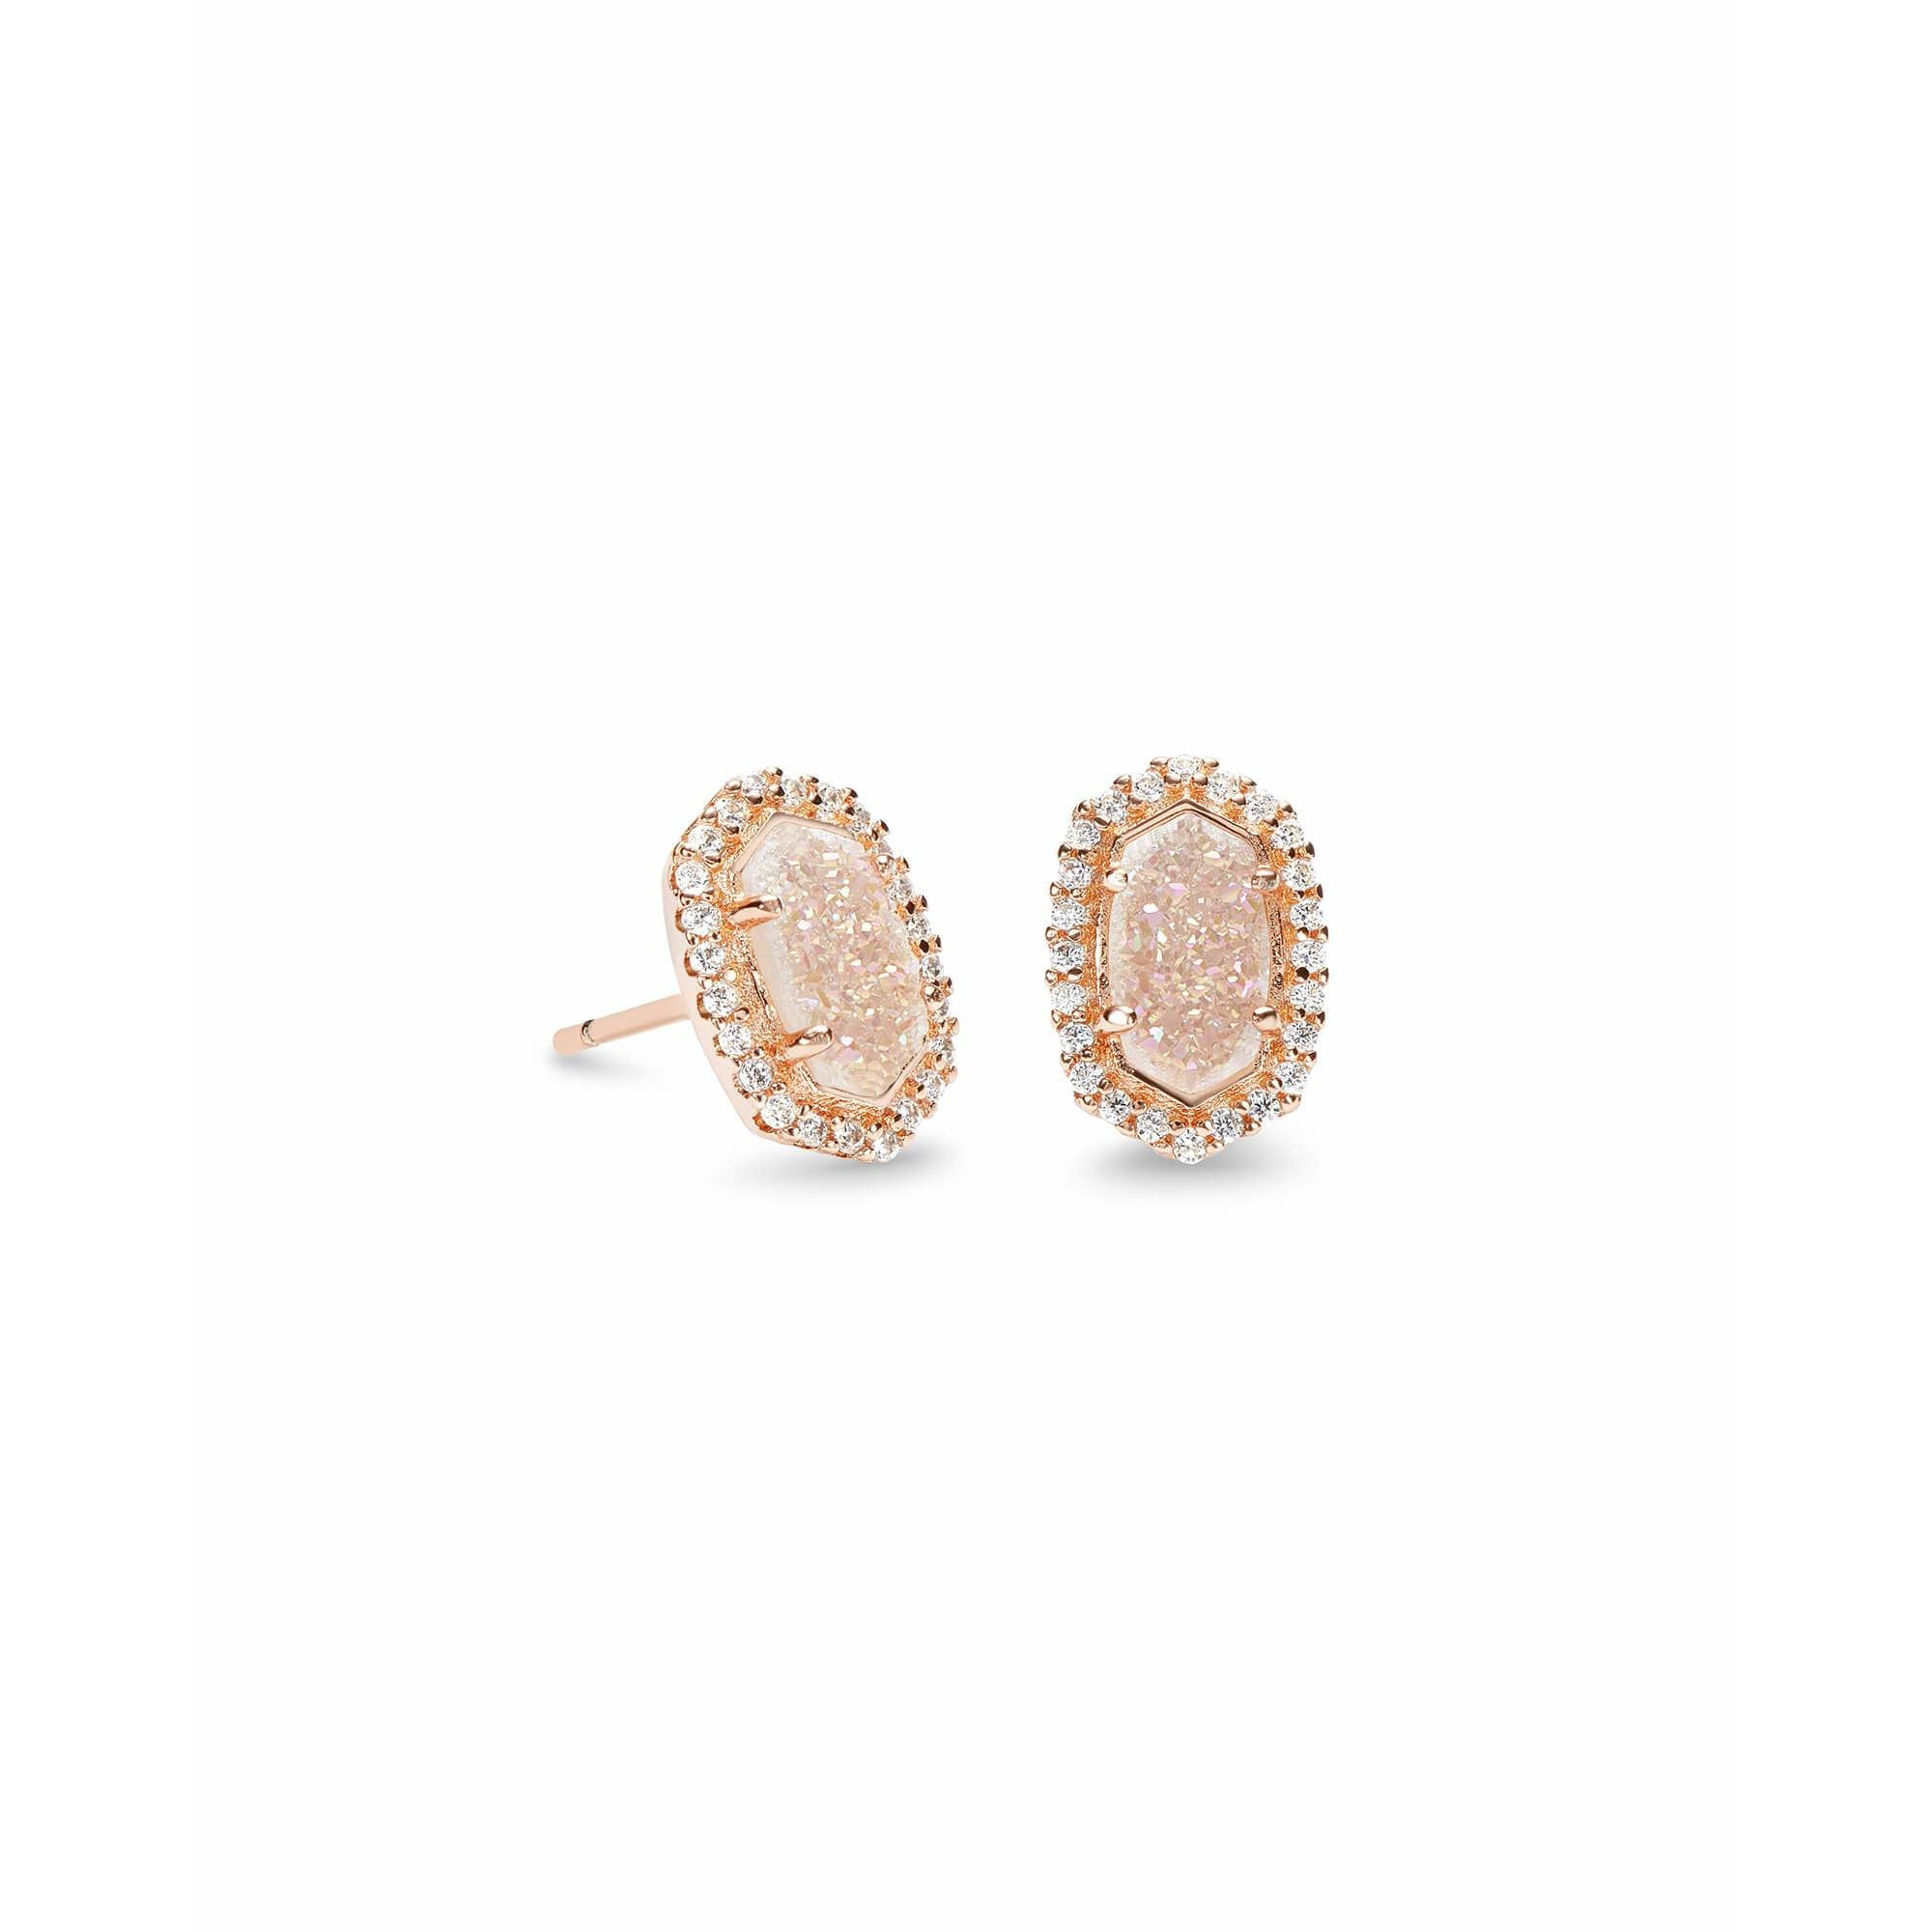 Kendra Scott - Cade Rose Gold Stud Earrings in Iridescent Drusy, Front View